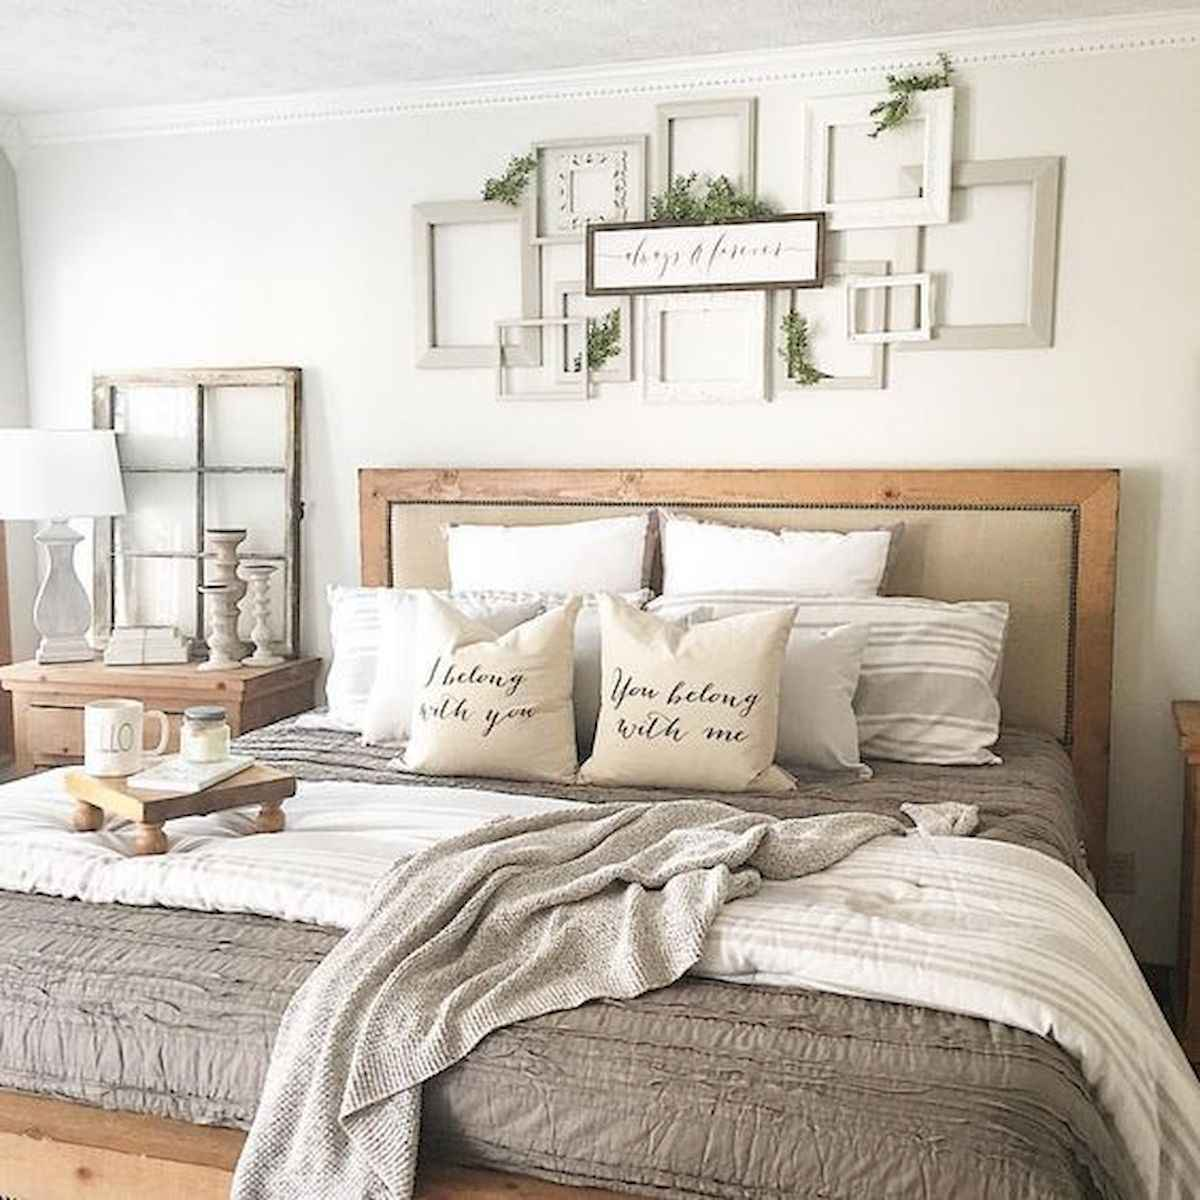 50 Favorite Bedding for Farmhouse Bedroom Design Ideas and Decor (38)